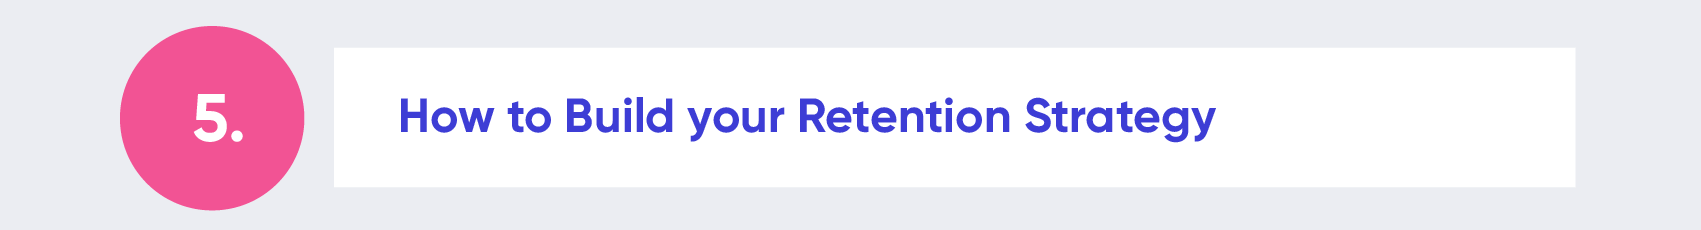 How to Build a Retention Strategy